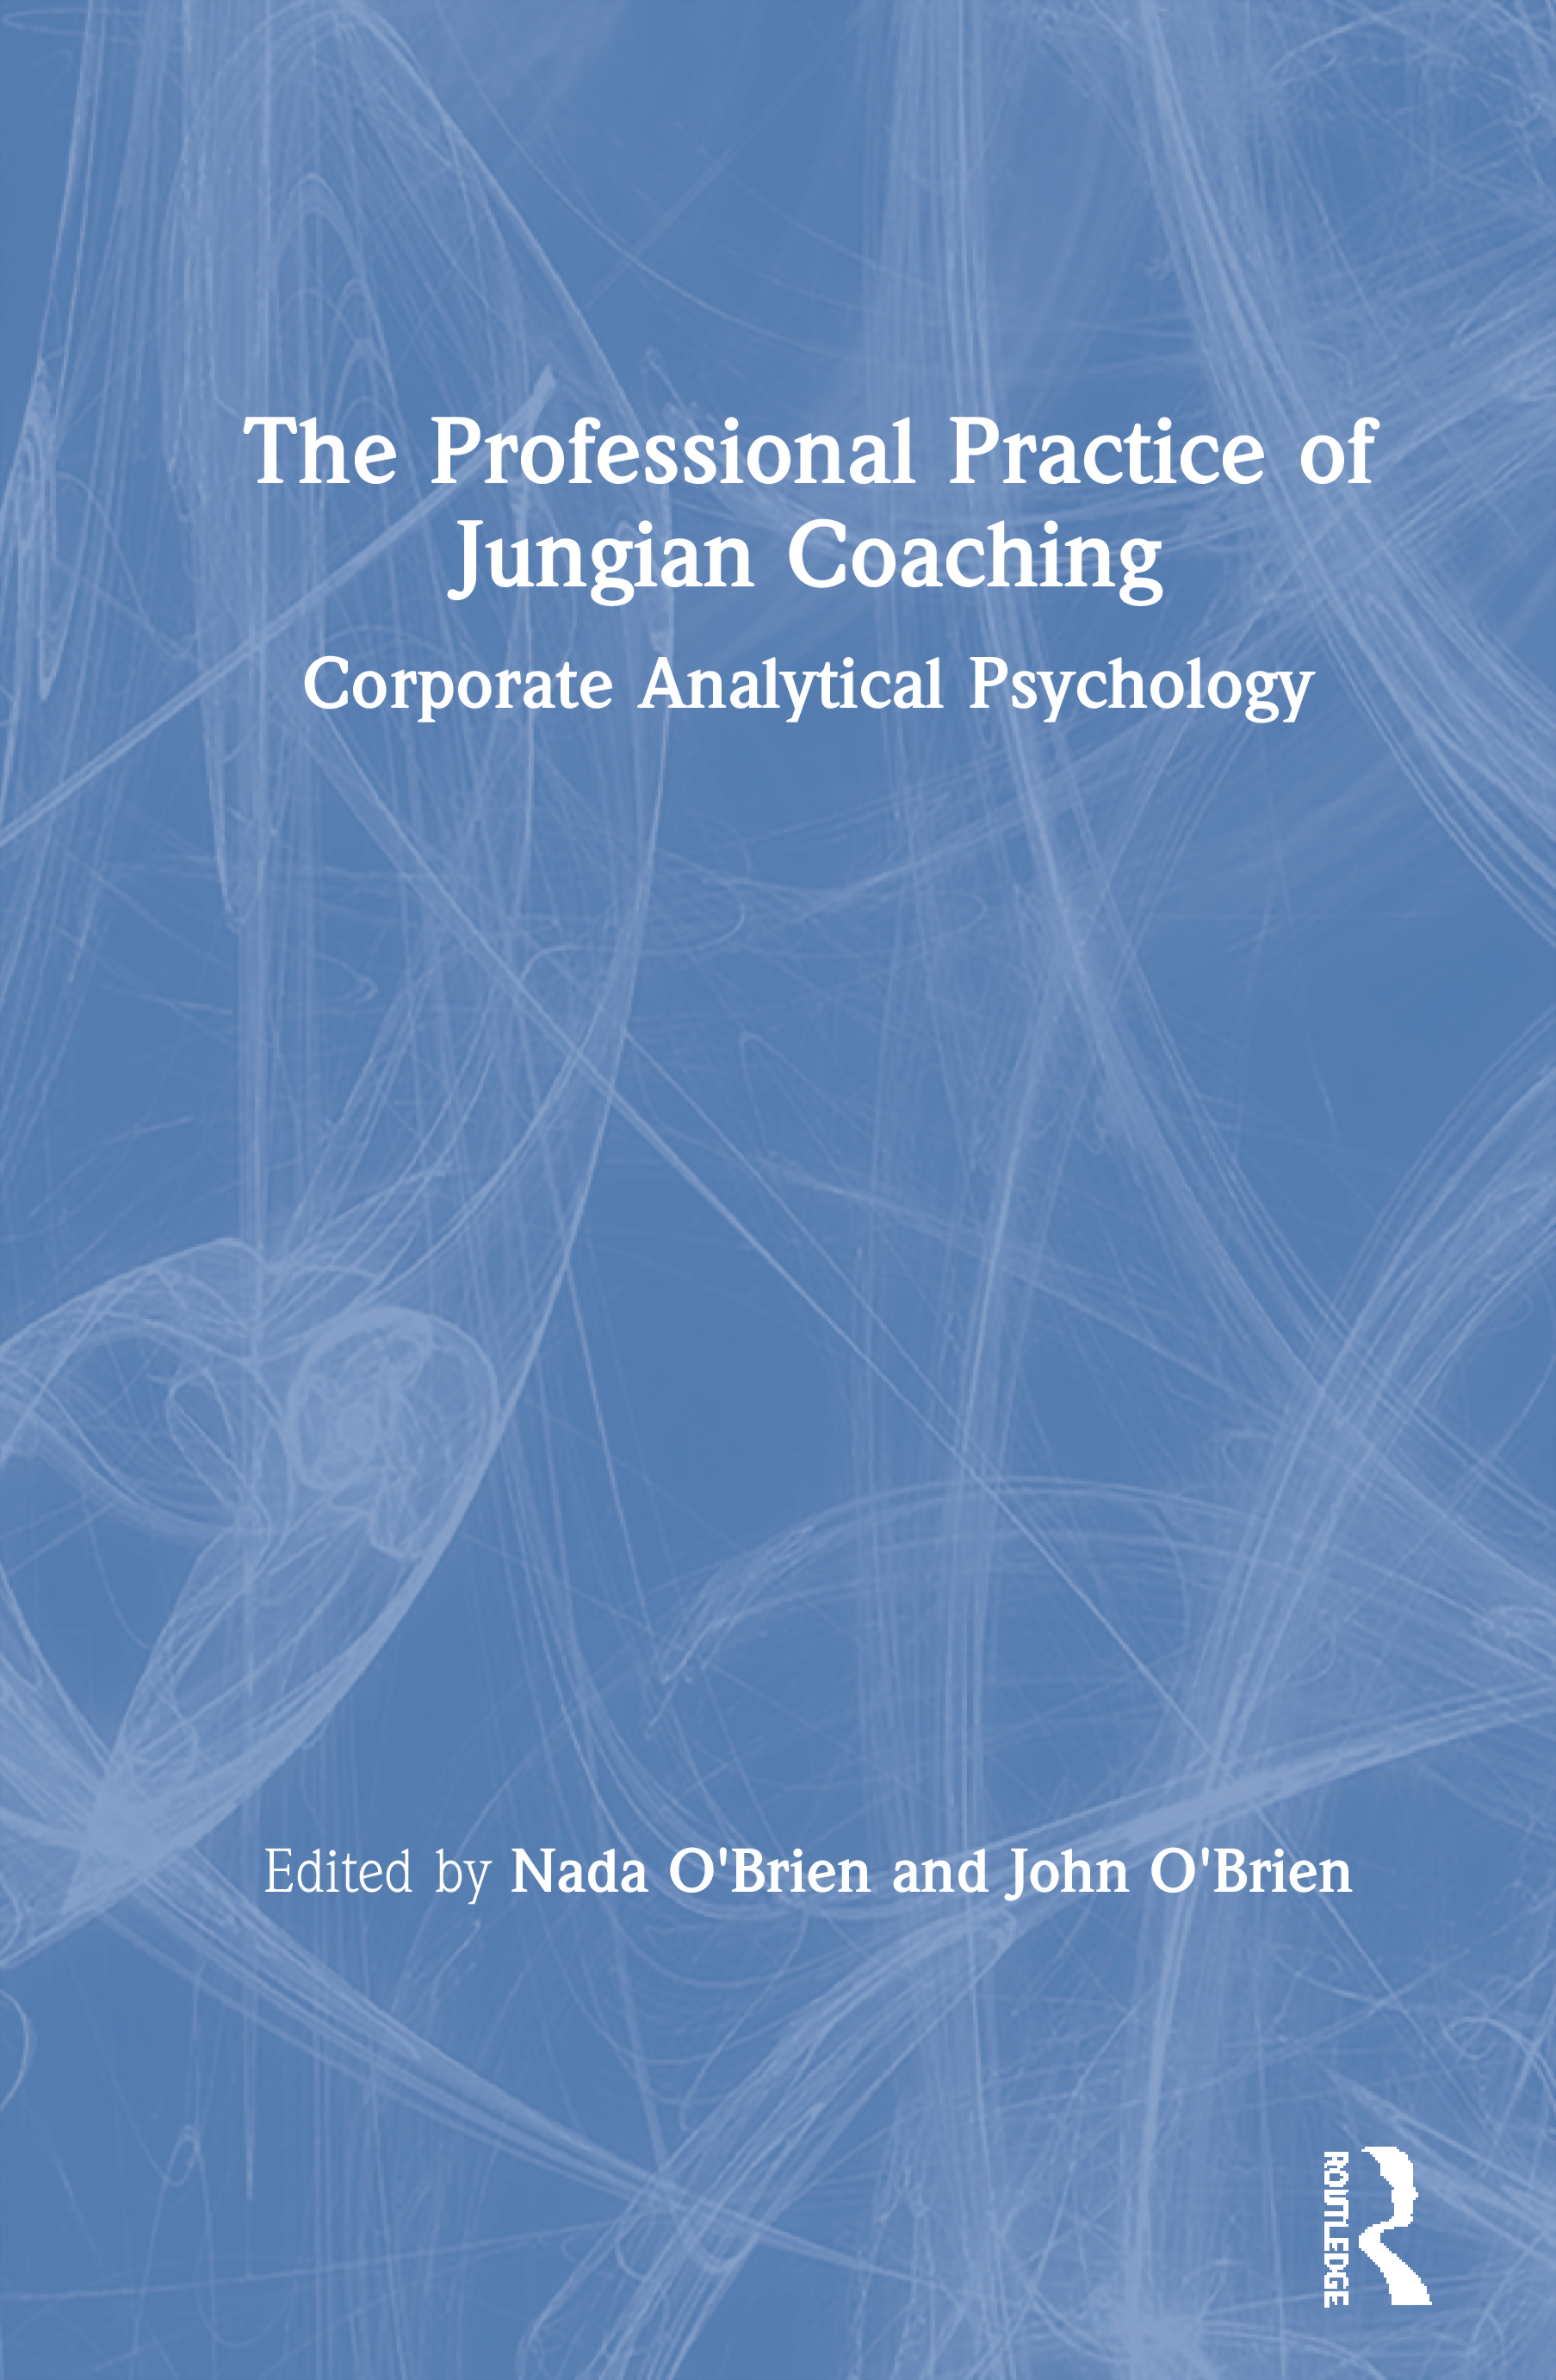 The Professional Practice of Jungian Coaching: Corporate Analytical Psychology, 1st Edition (Paperback) book cover